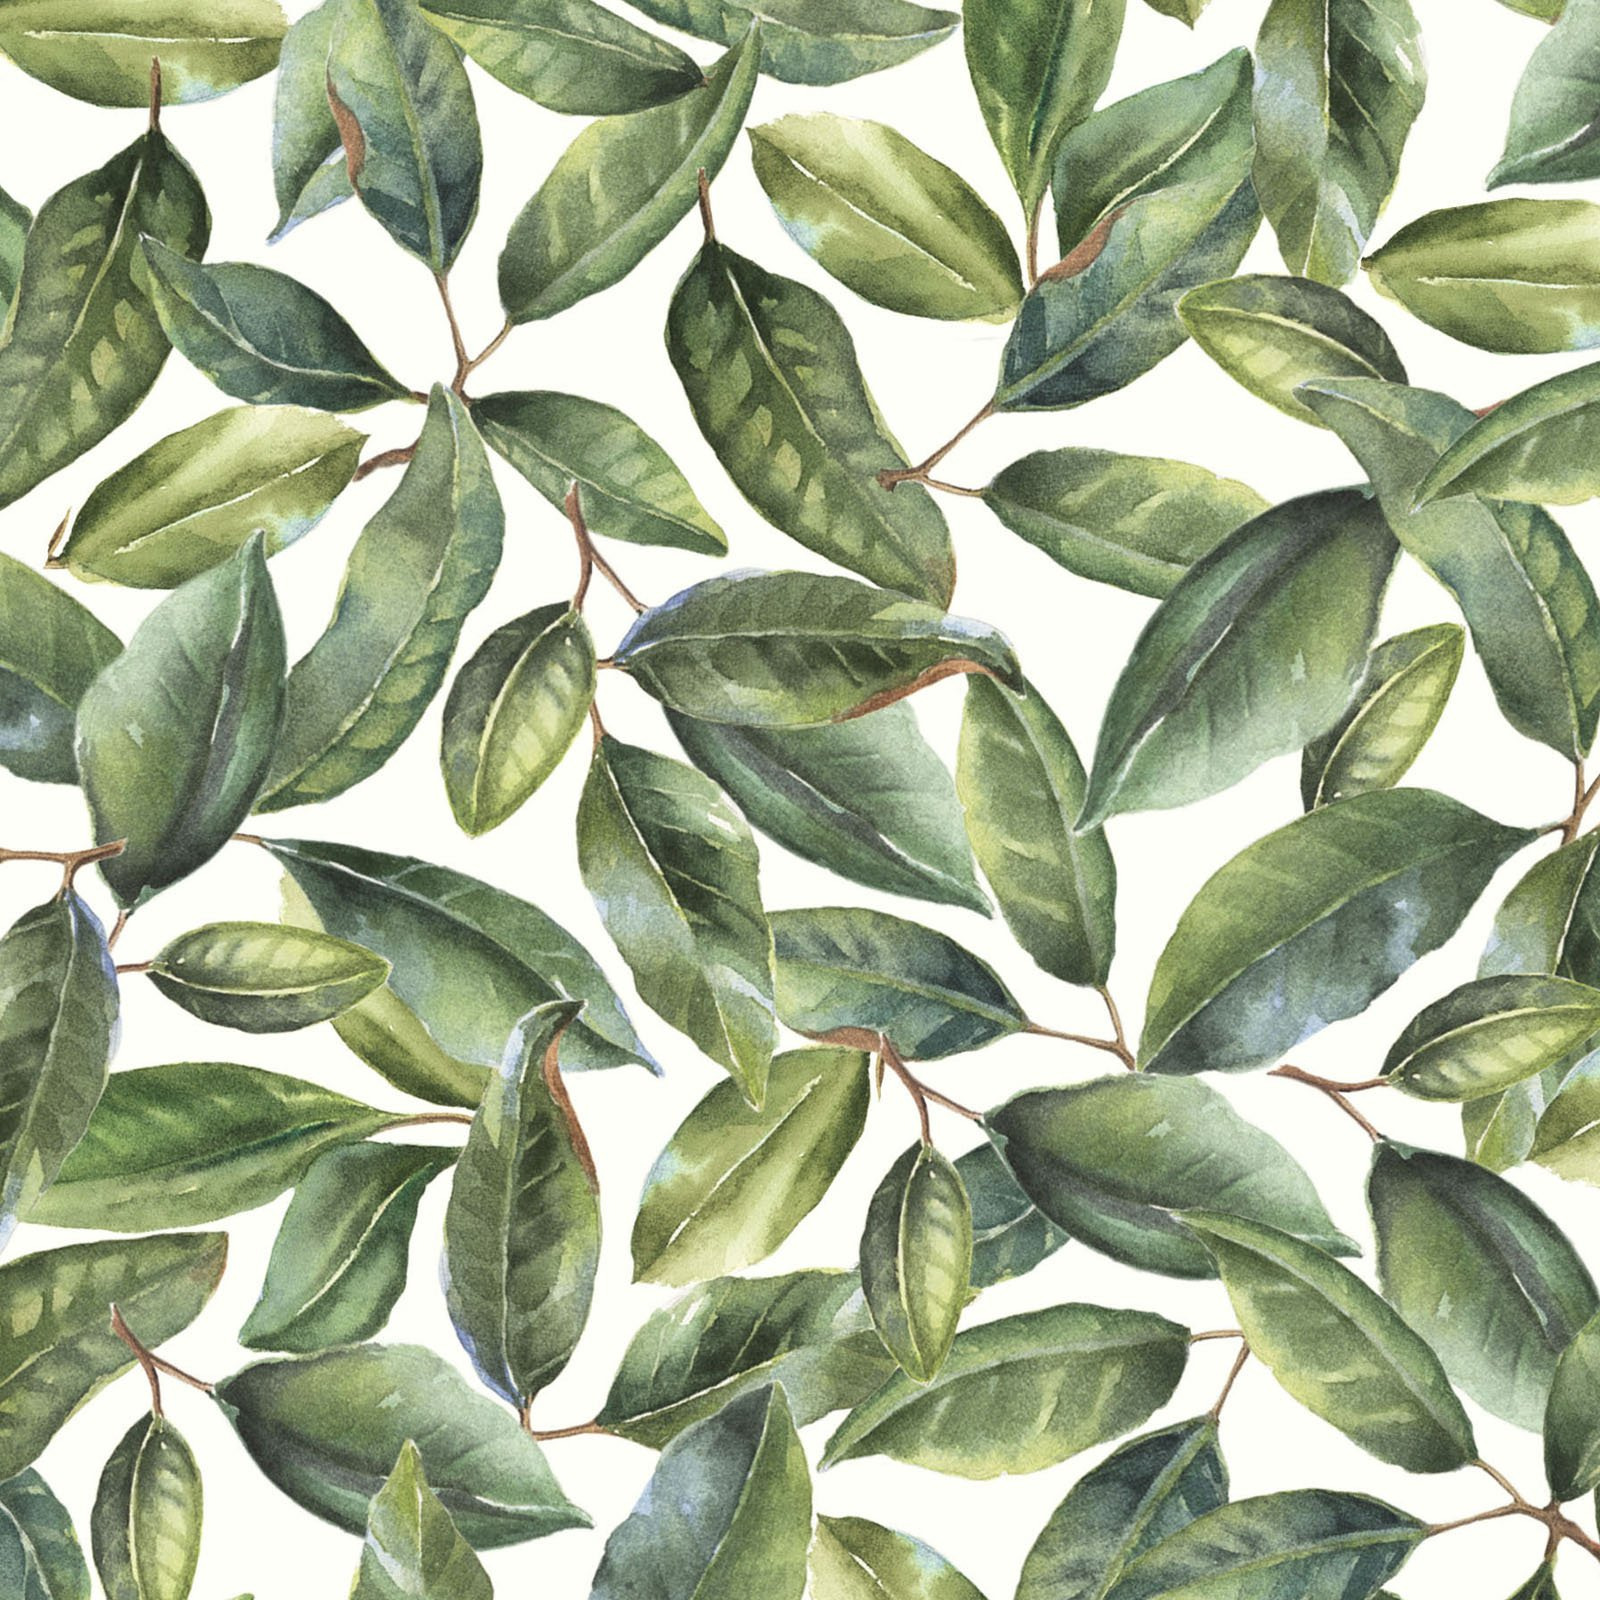 MAGN-4254 G - MAGNOLIAS BY SANDY CLOUGH LEAVES GREEN